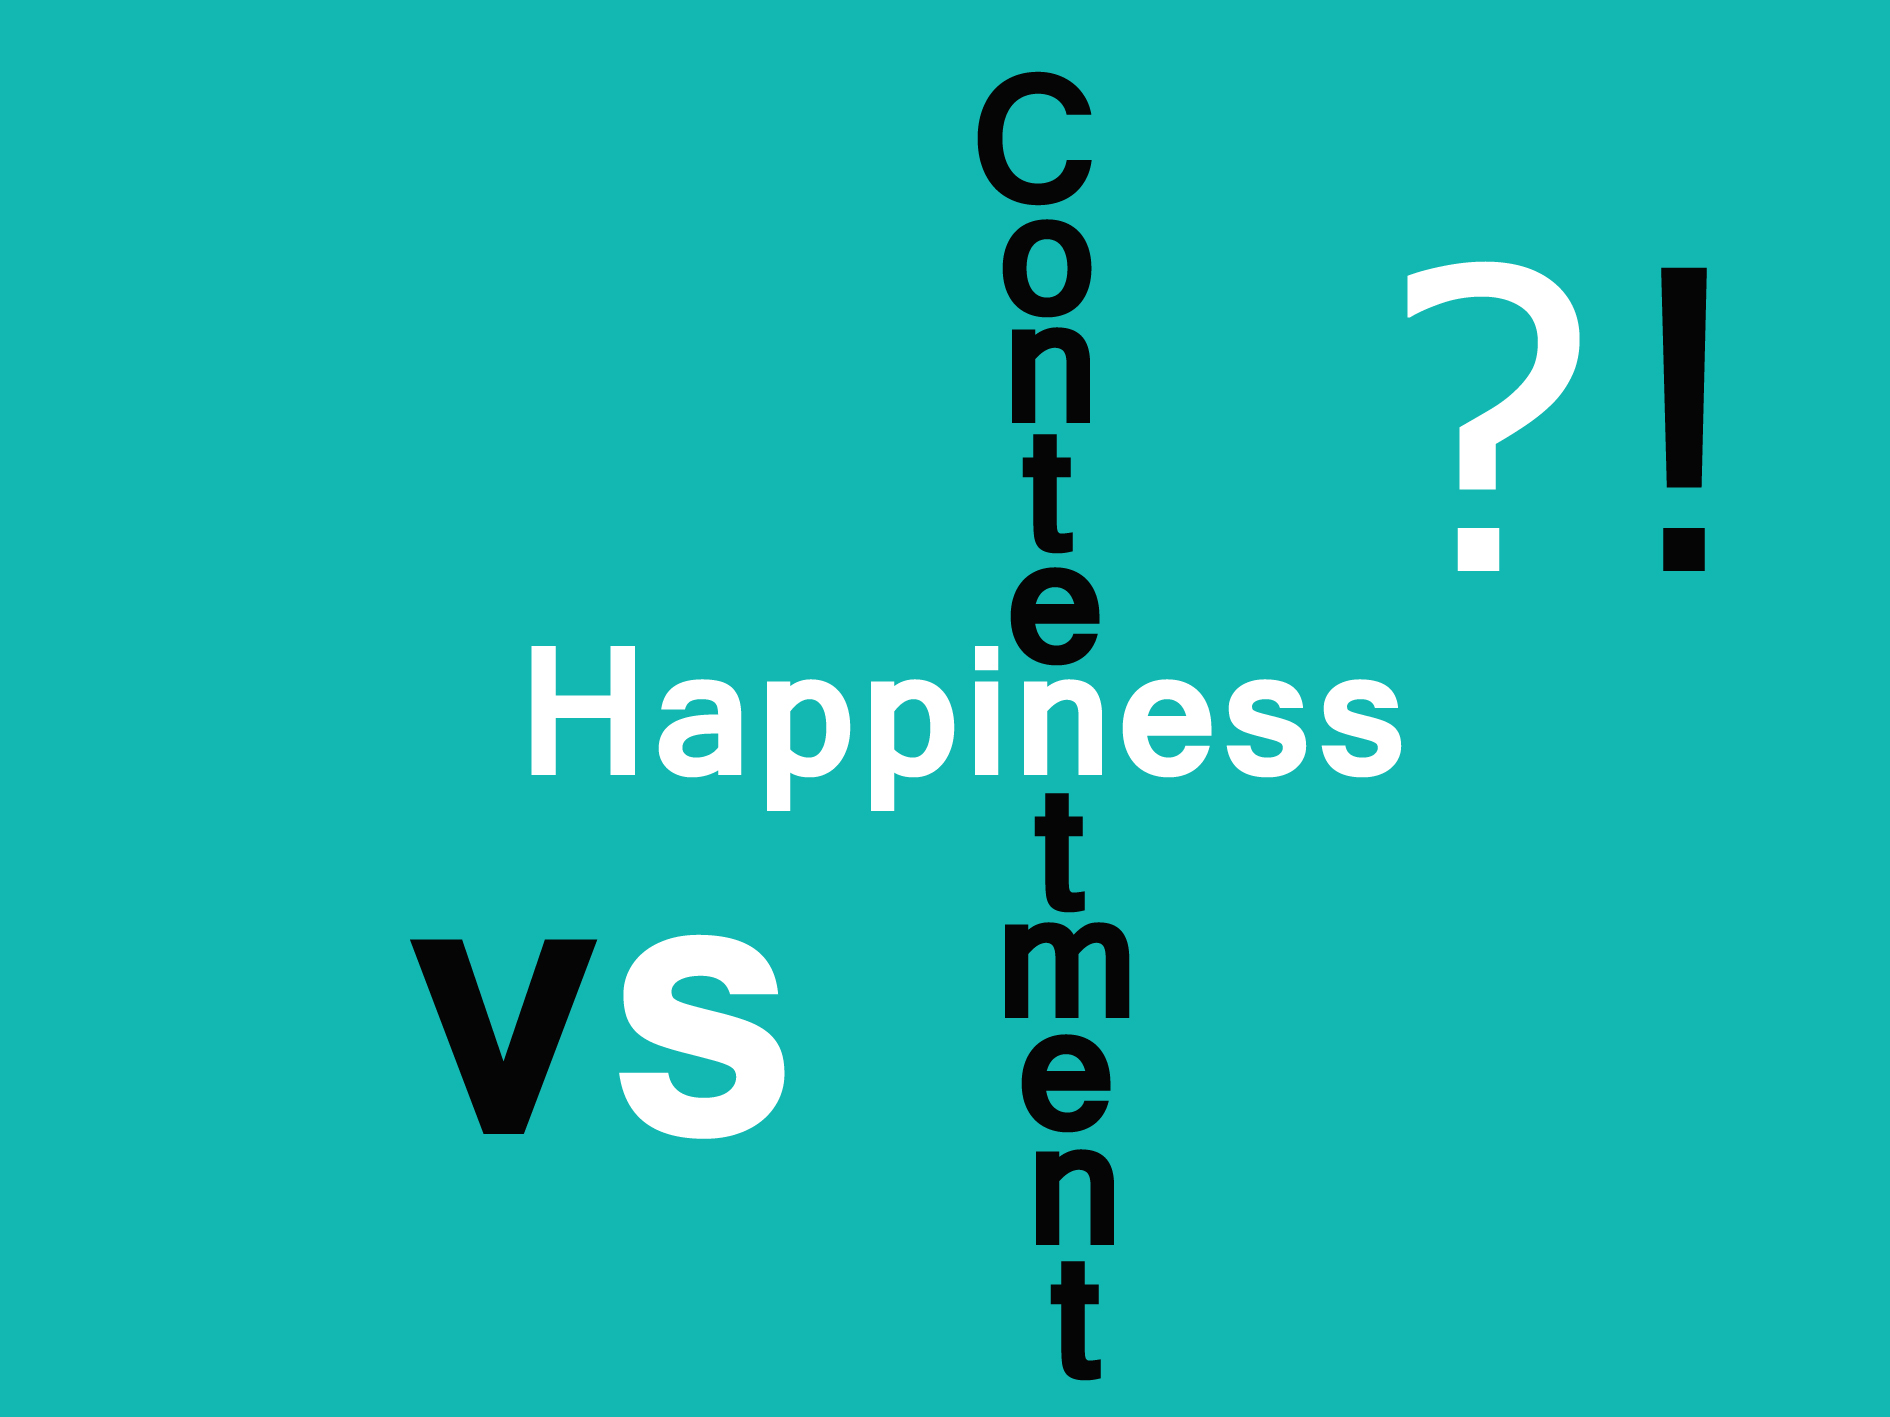 Happiness vs. Contentment